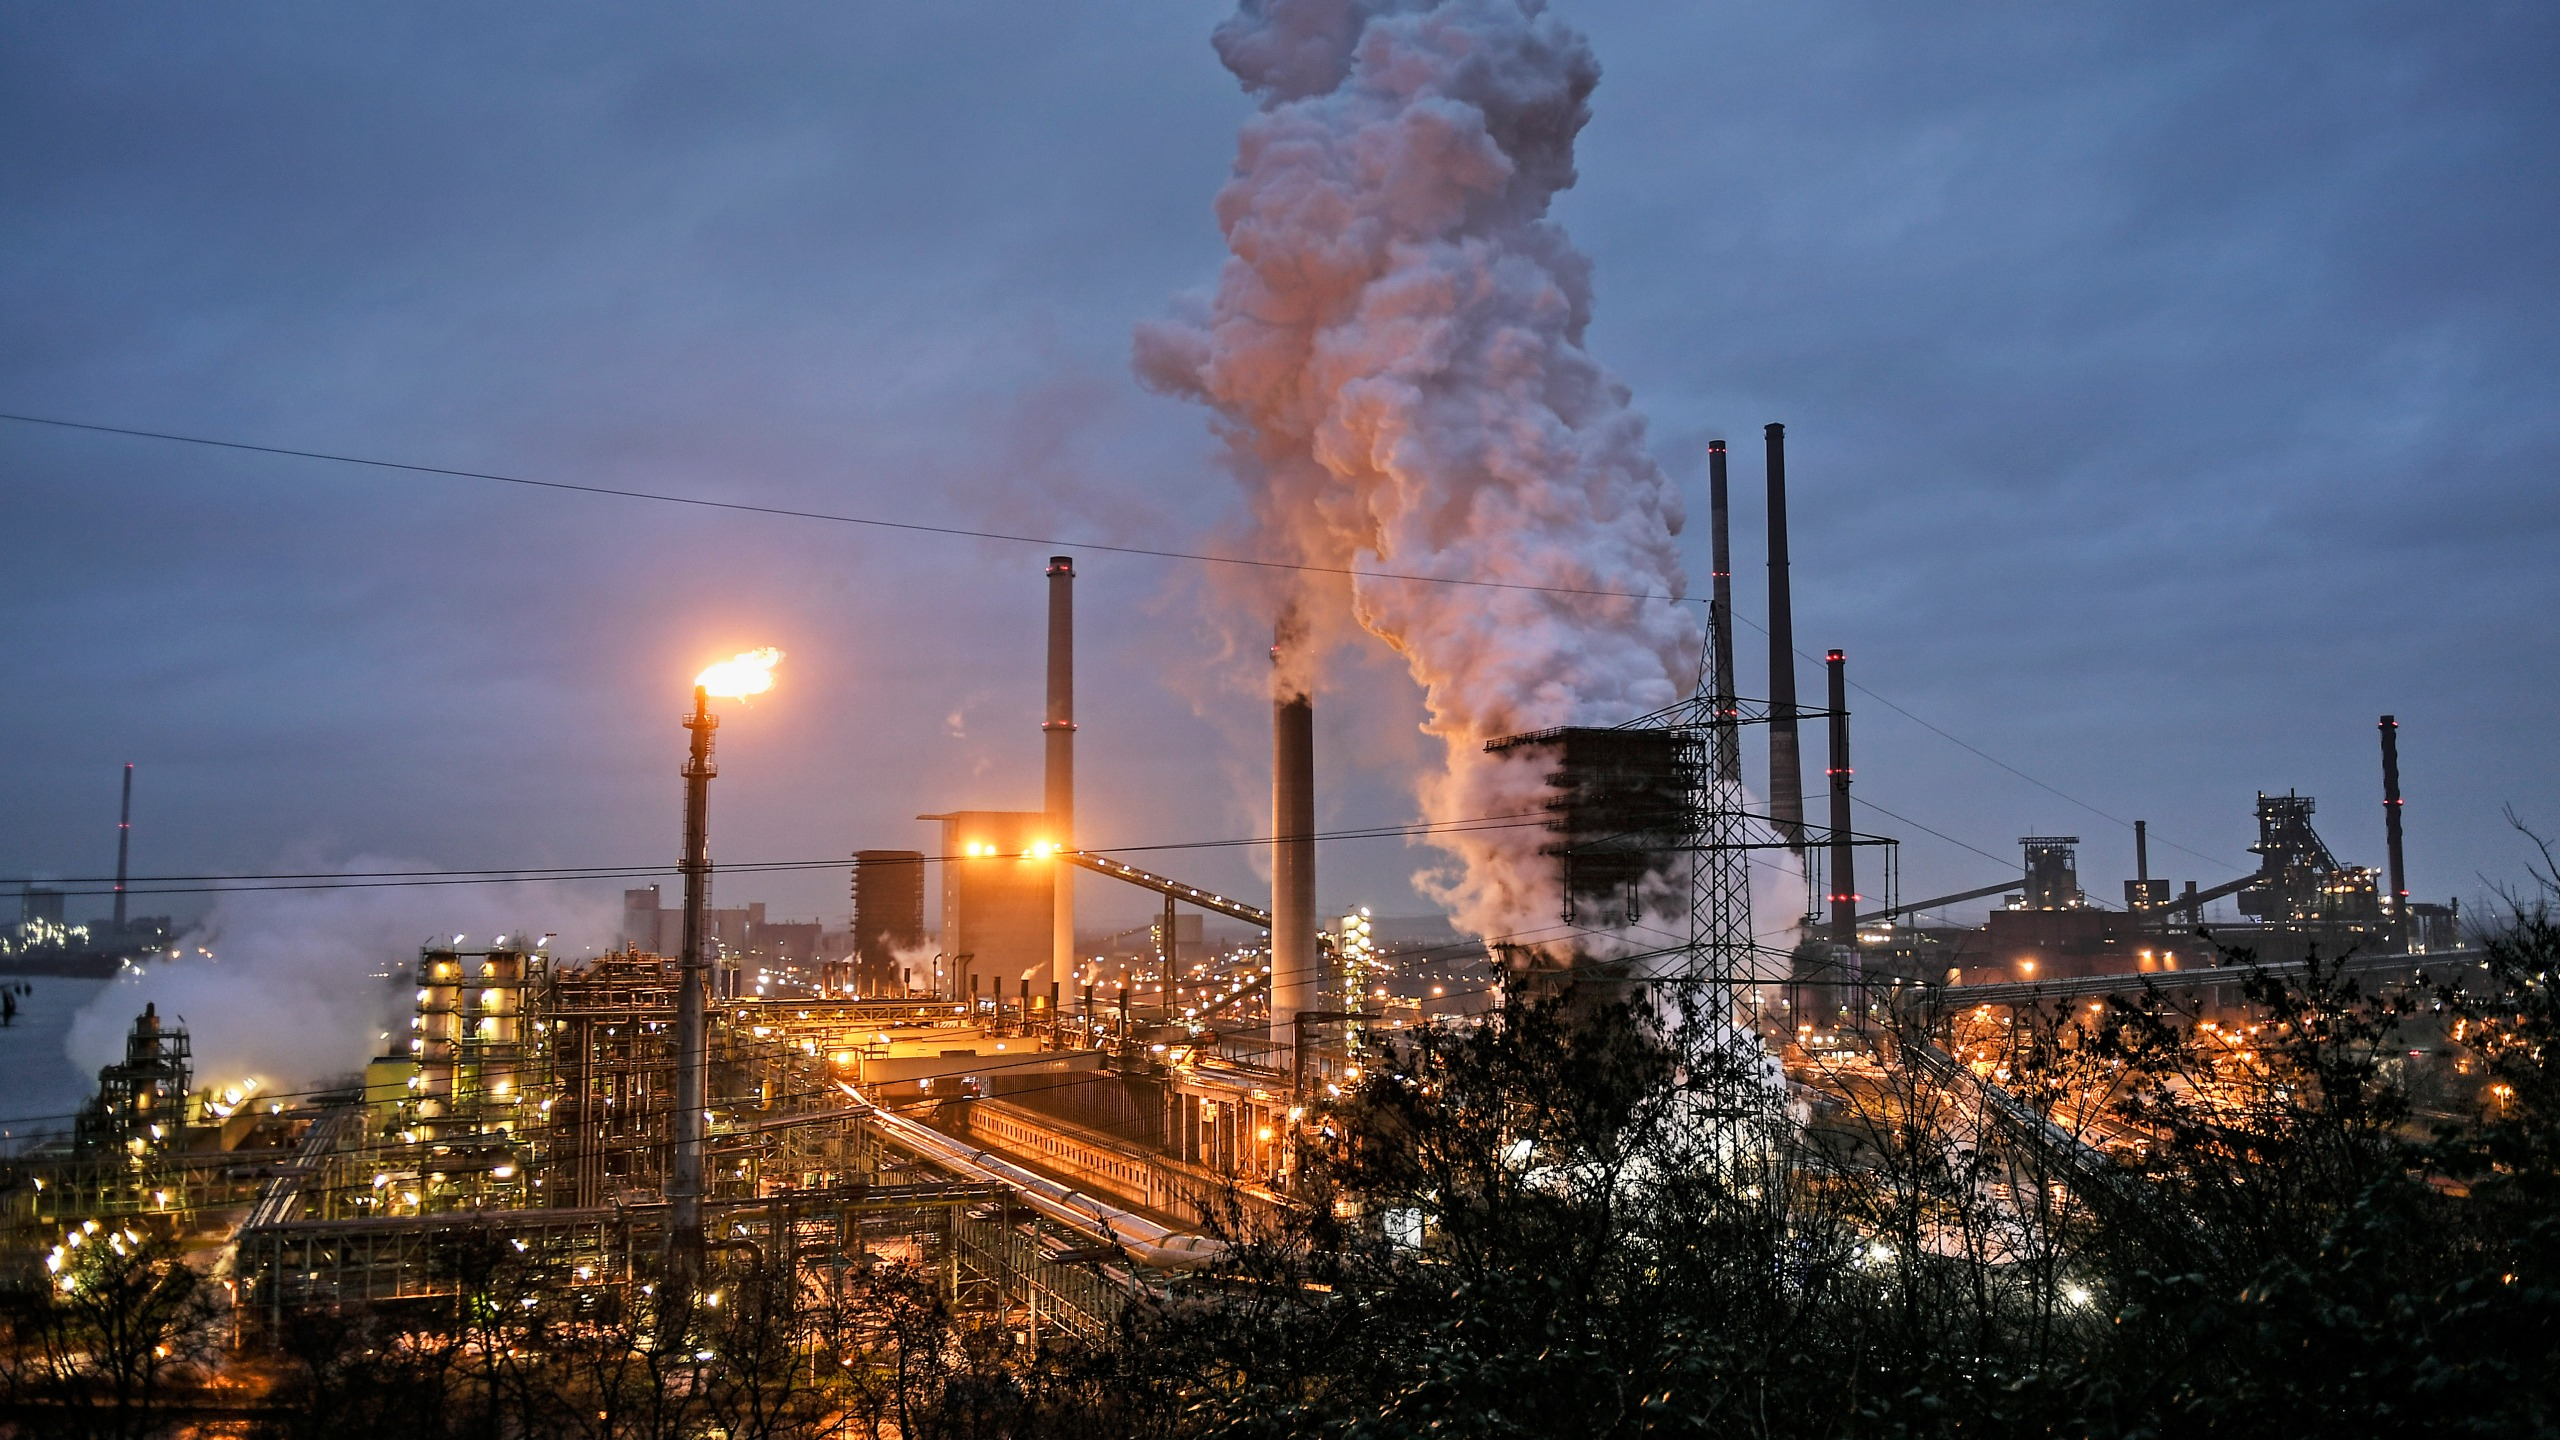 A ThyssenKrupp coking plant steams around the clock for the nearby steel mill in Duisburg, Germany, on Jan. 30, 2020. (Martin Meissner / Associated Press)